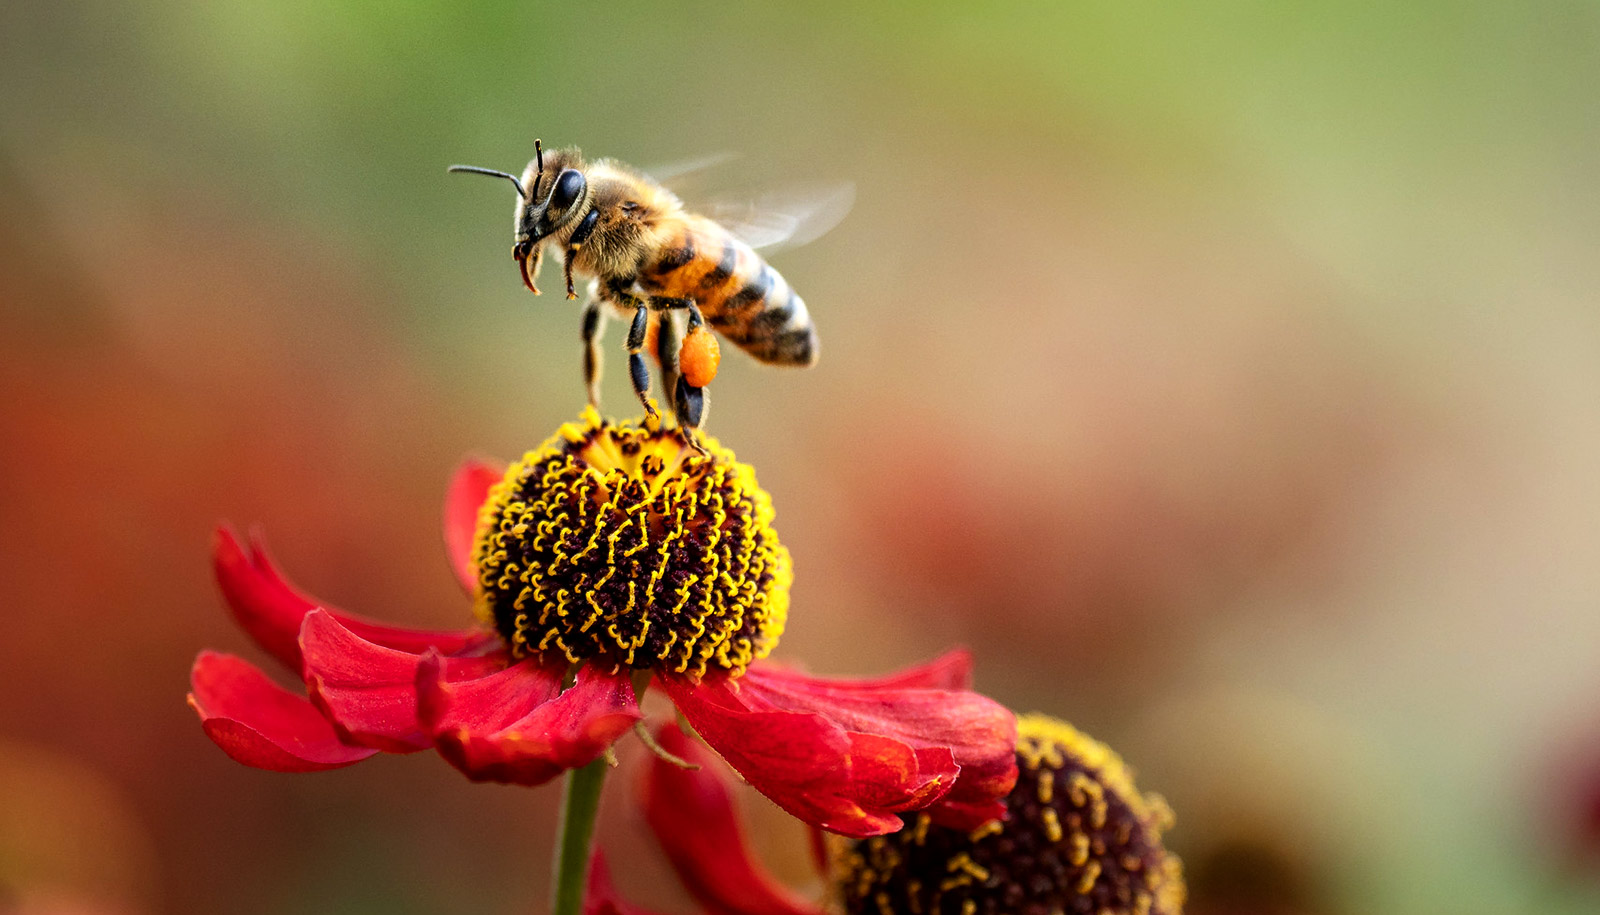 World map of bees could help keep them buzzing - Futurity